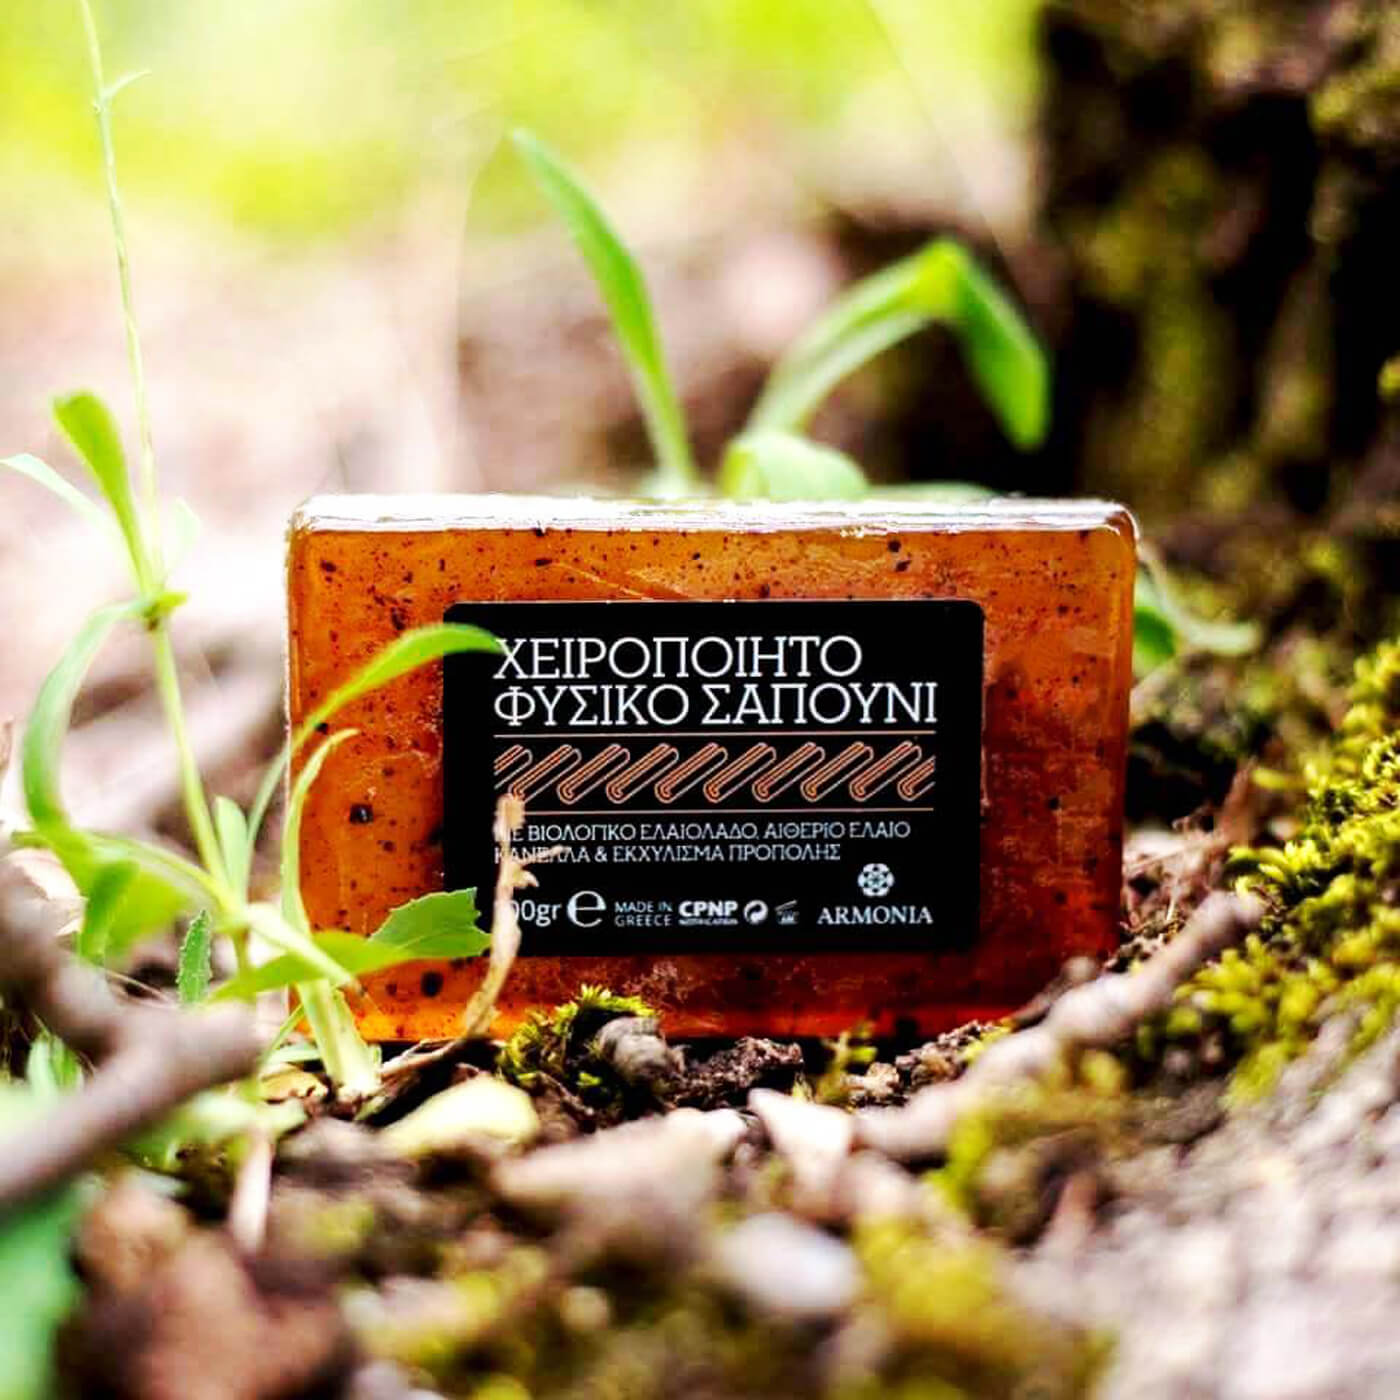 Handmade Soap with Organic Olive Oil cinnamon essential propolis Natural 100% Skin Moisturizing Acne extracts Antioxidants Dermatologically Vitamin greek aging